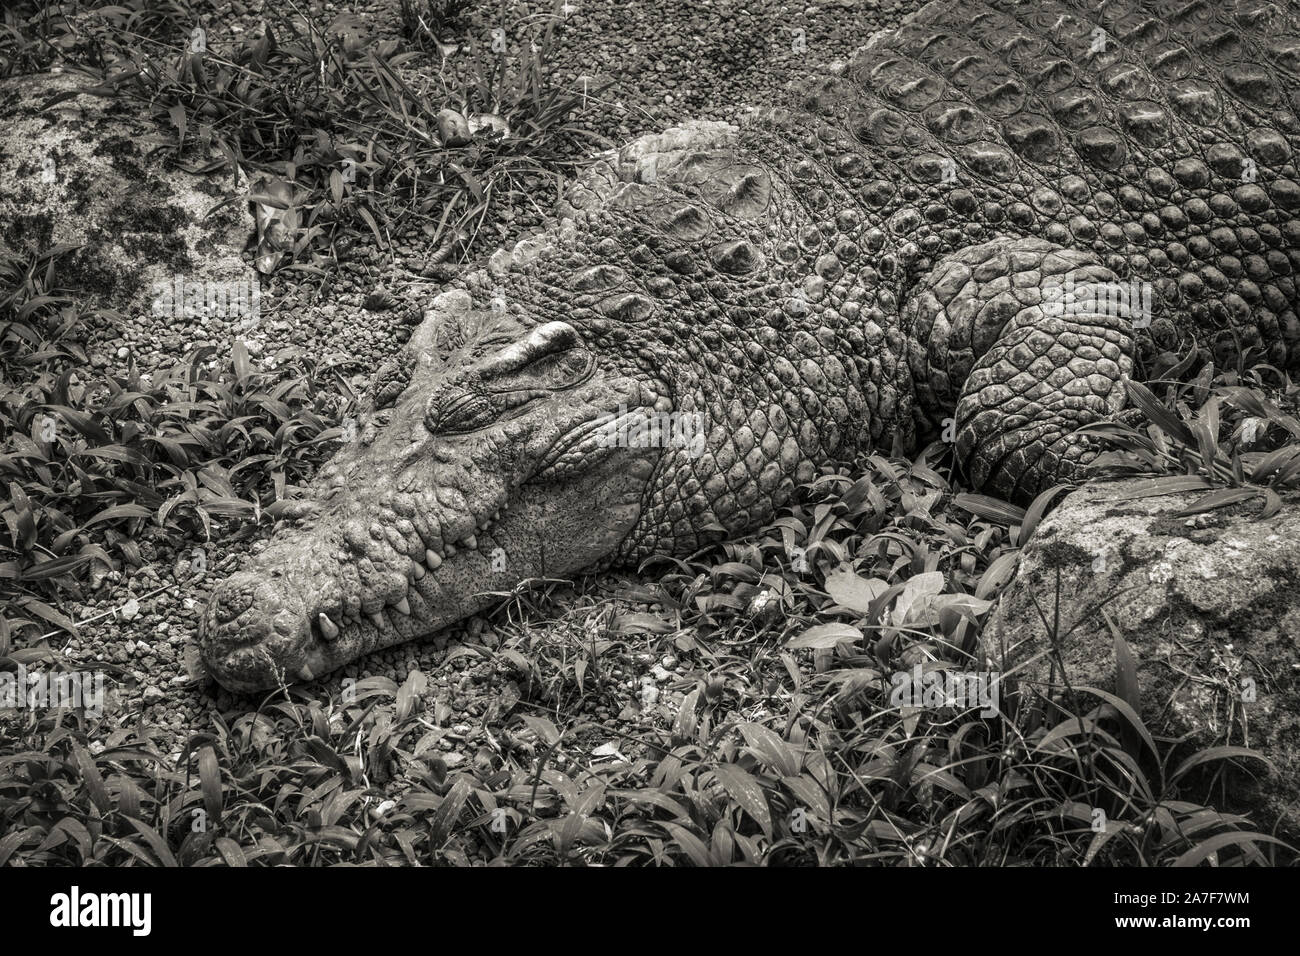 A large crocodile swamp sun baking and resting on the dry gravels Stock Photo